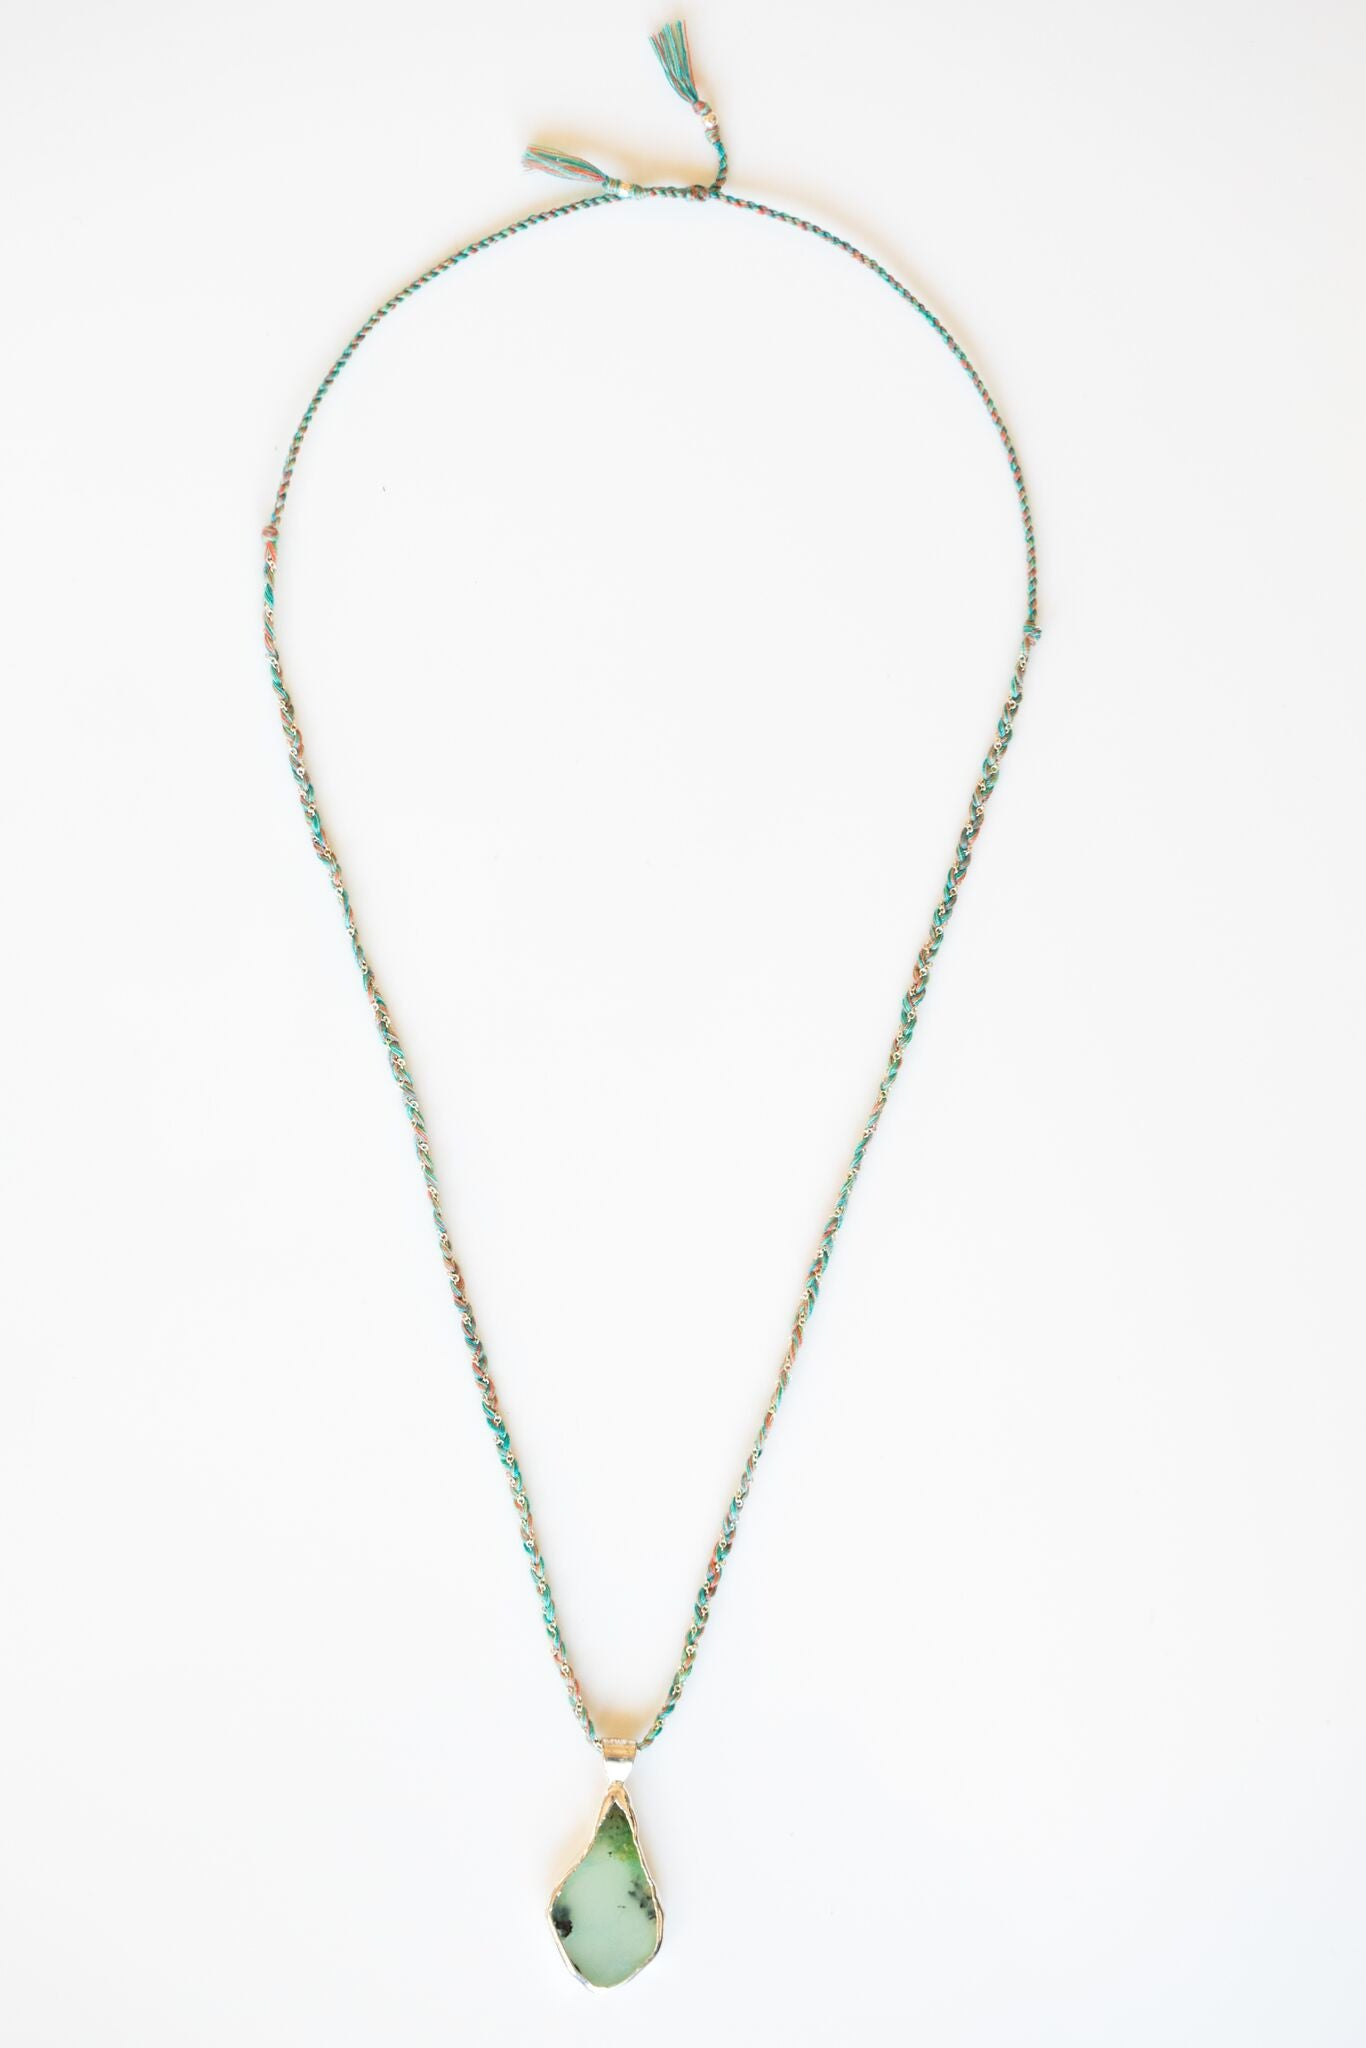 drop product image chrysoprase crysophrase dsc necklace long of rebekahgough